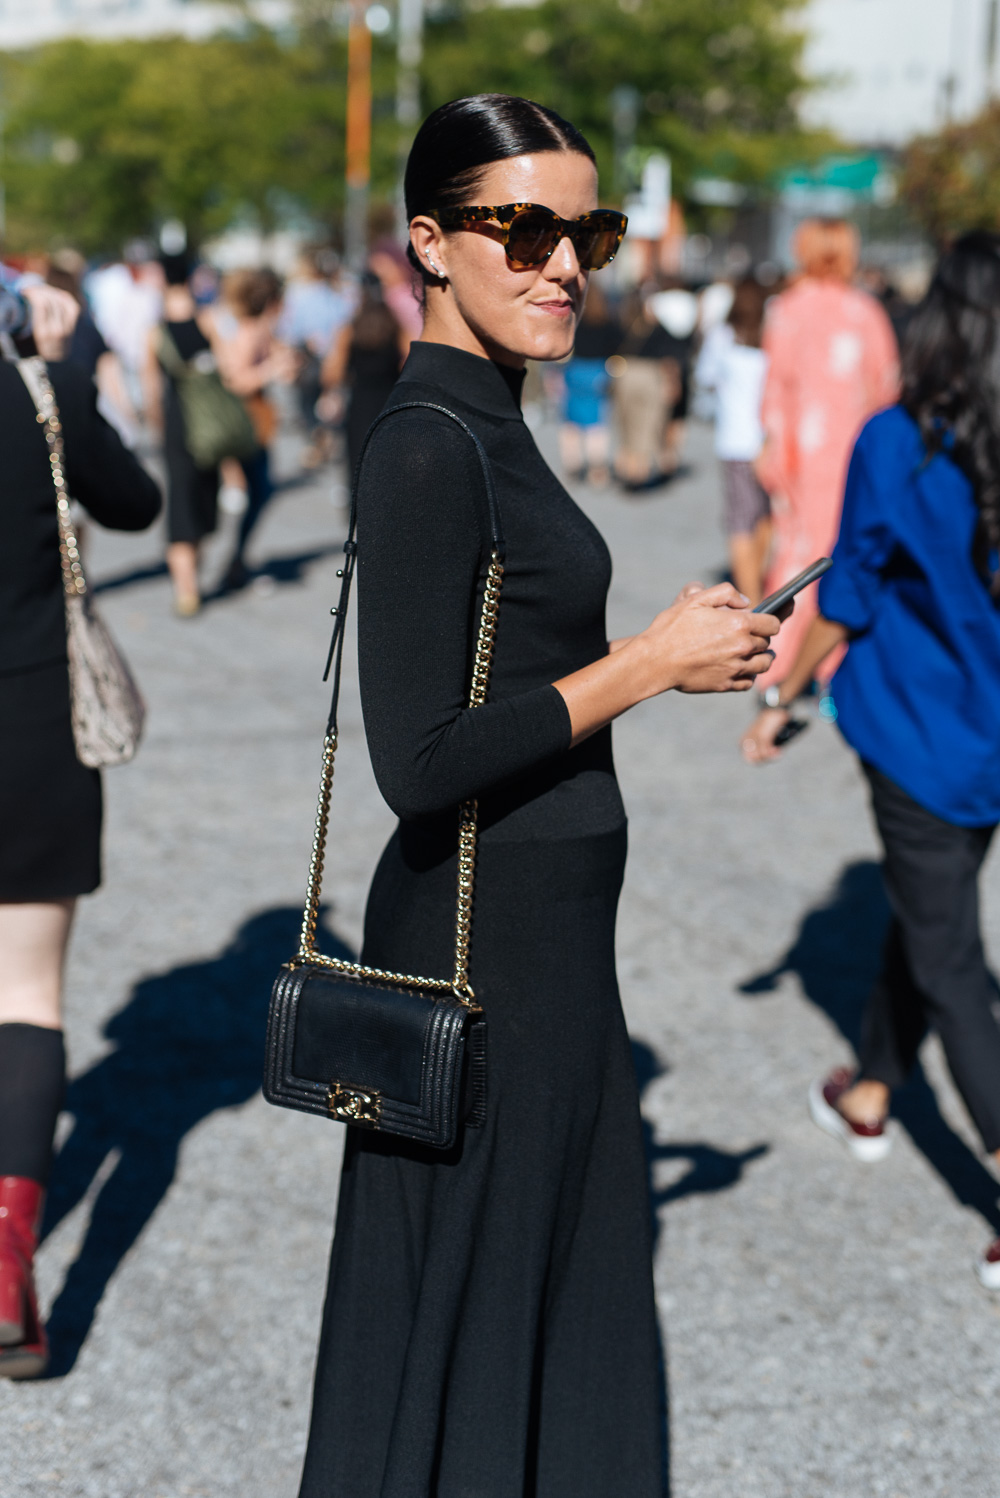 What NYFW is Like For a Street Style Photographer: Getty Images' Timur Emek TellsAll